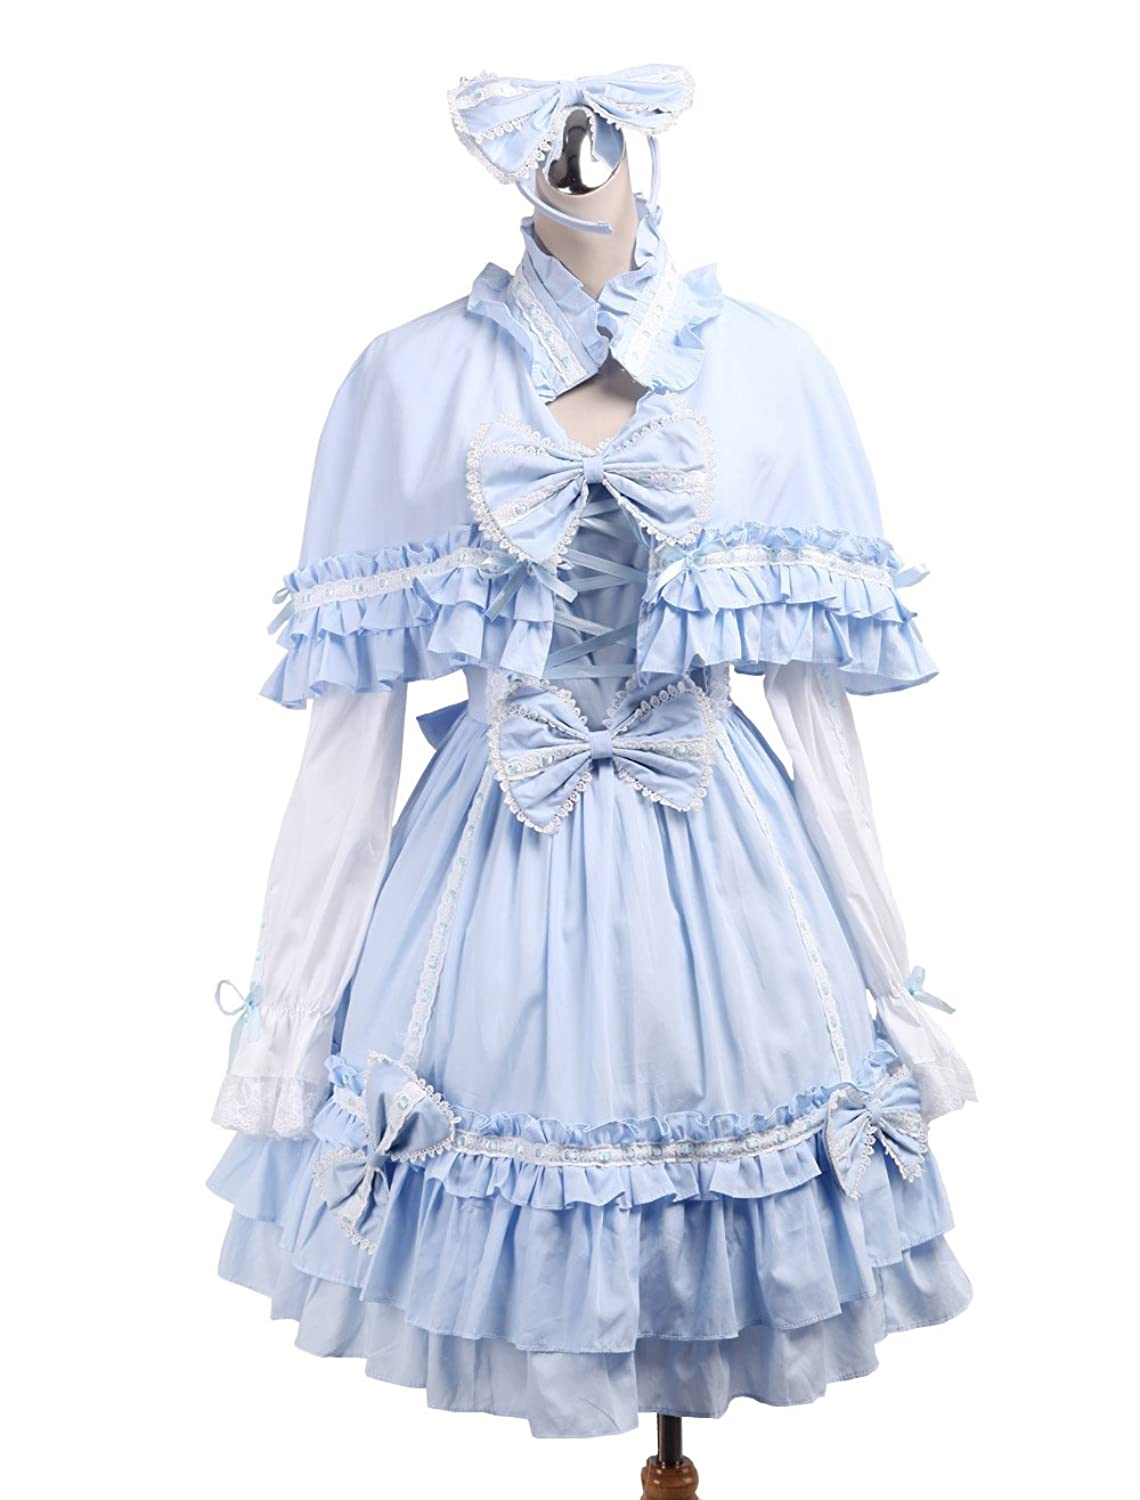 Victorian Kids Costumes & Shoes- Girls, Boys, Baby, Toddler antaina Blue Cotton Bows Ruffle Sweet Victorian Lolita Dress With Cape Headware $68.99 AT vintagedancer.com